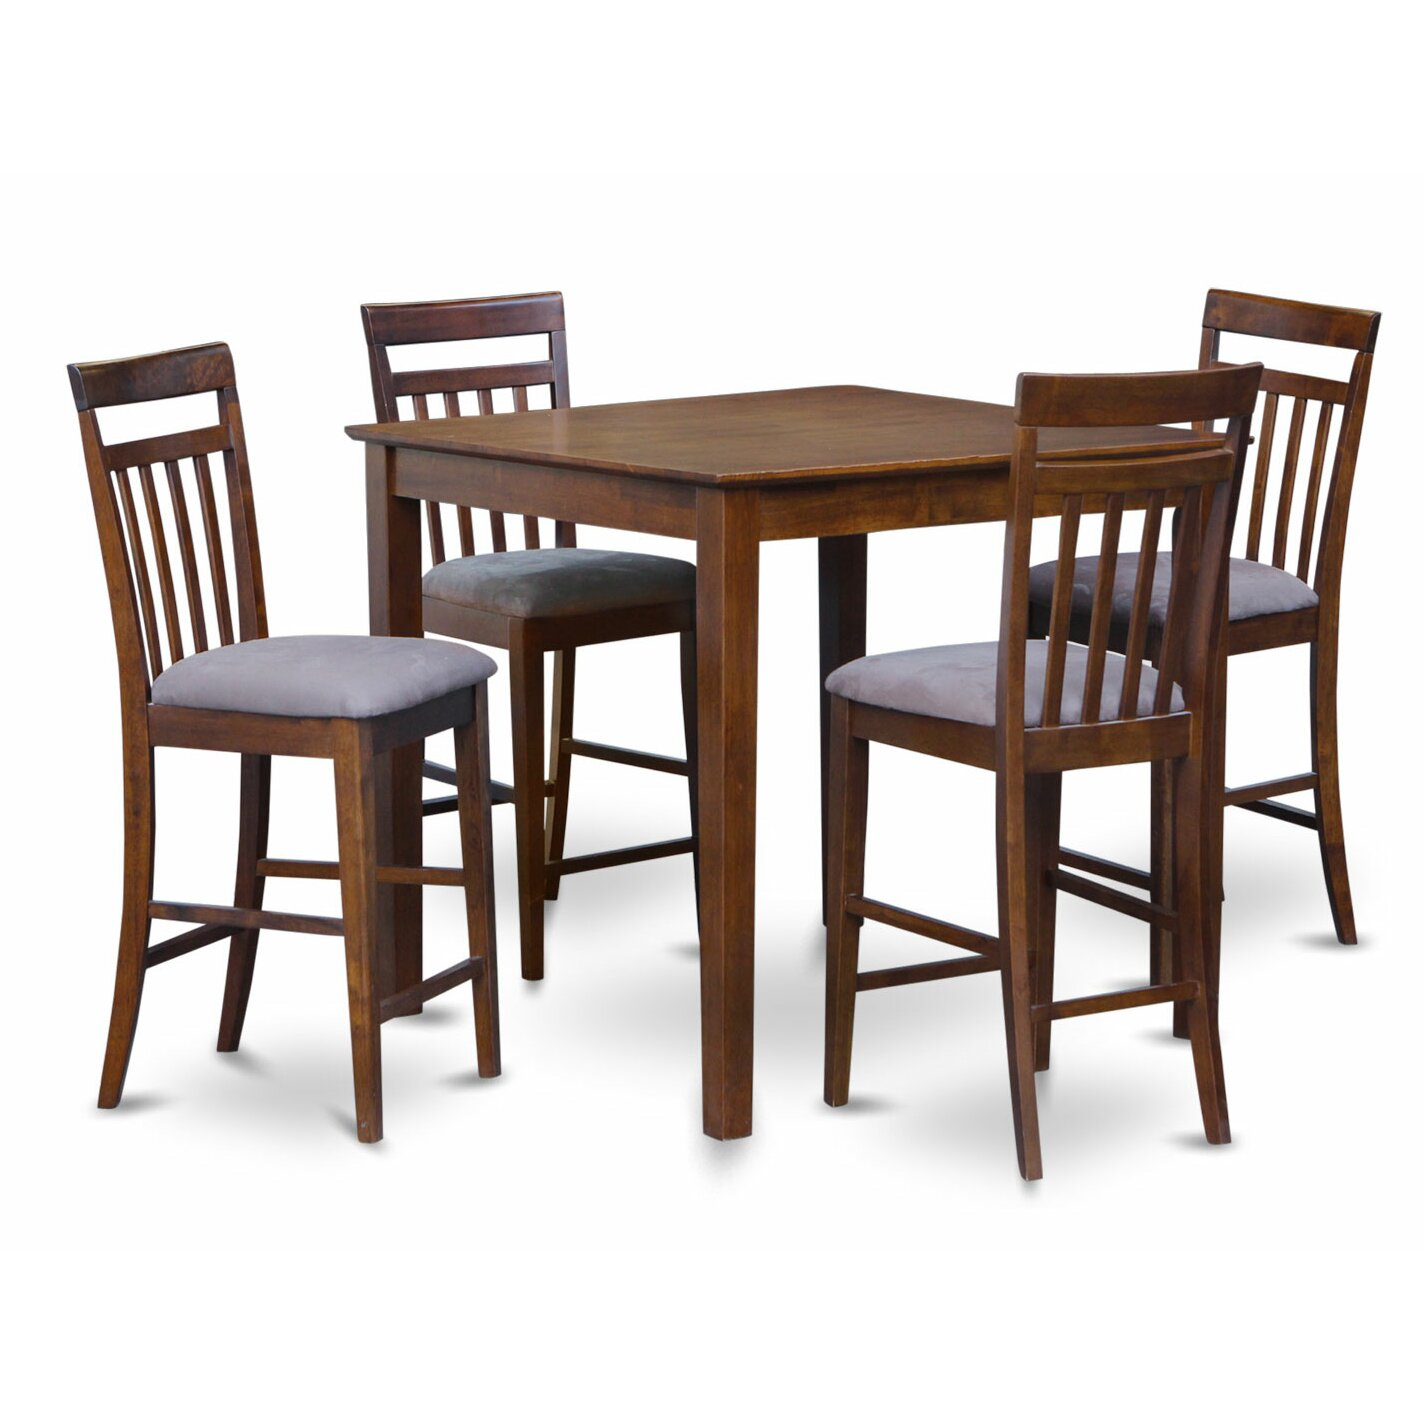 East West 5 Piece Counter Height Pub Table Set Wayfair : East West Furniture 5 Piece Counter Height Pub Table Set from www.wayfair.com size 1425 x 1425 jpeg 227kB